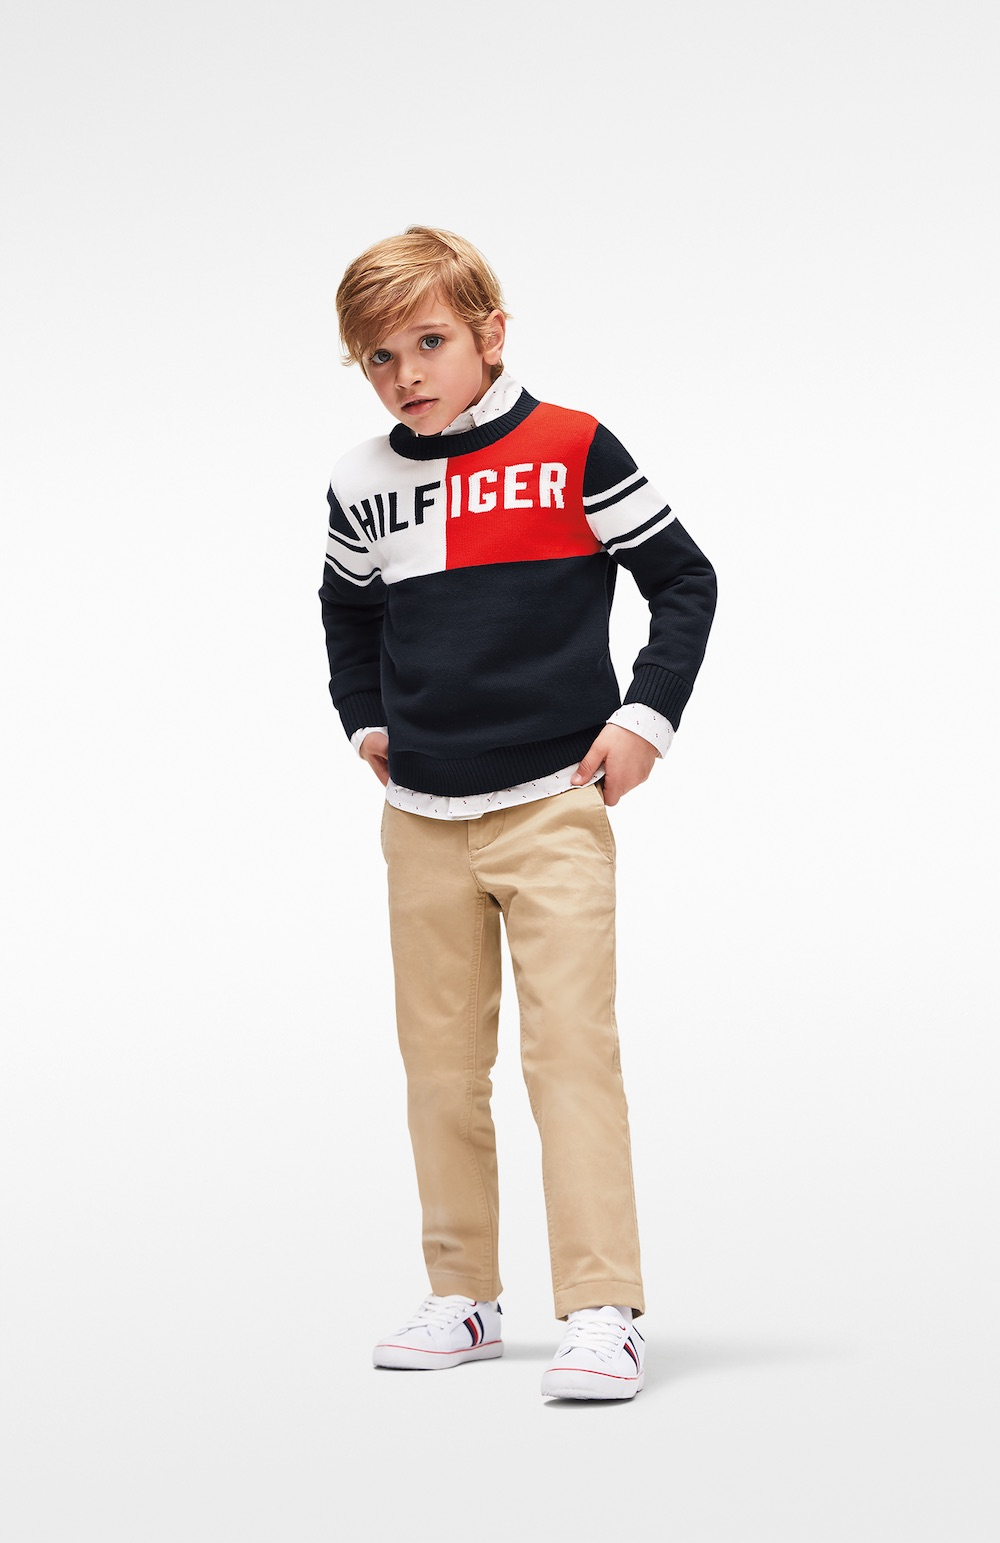 1014009_CS_POS_FA18_IN-STORE_KID-BOY_OCT-JAN_SWEATERS-OXFORDS_1335_r4.psd